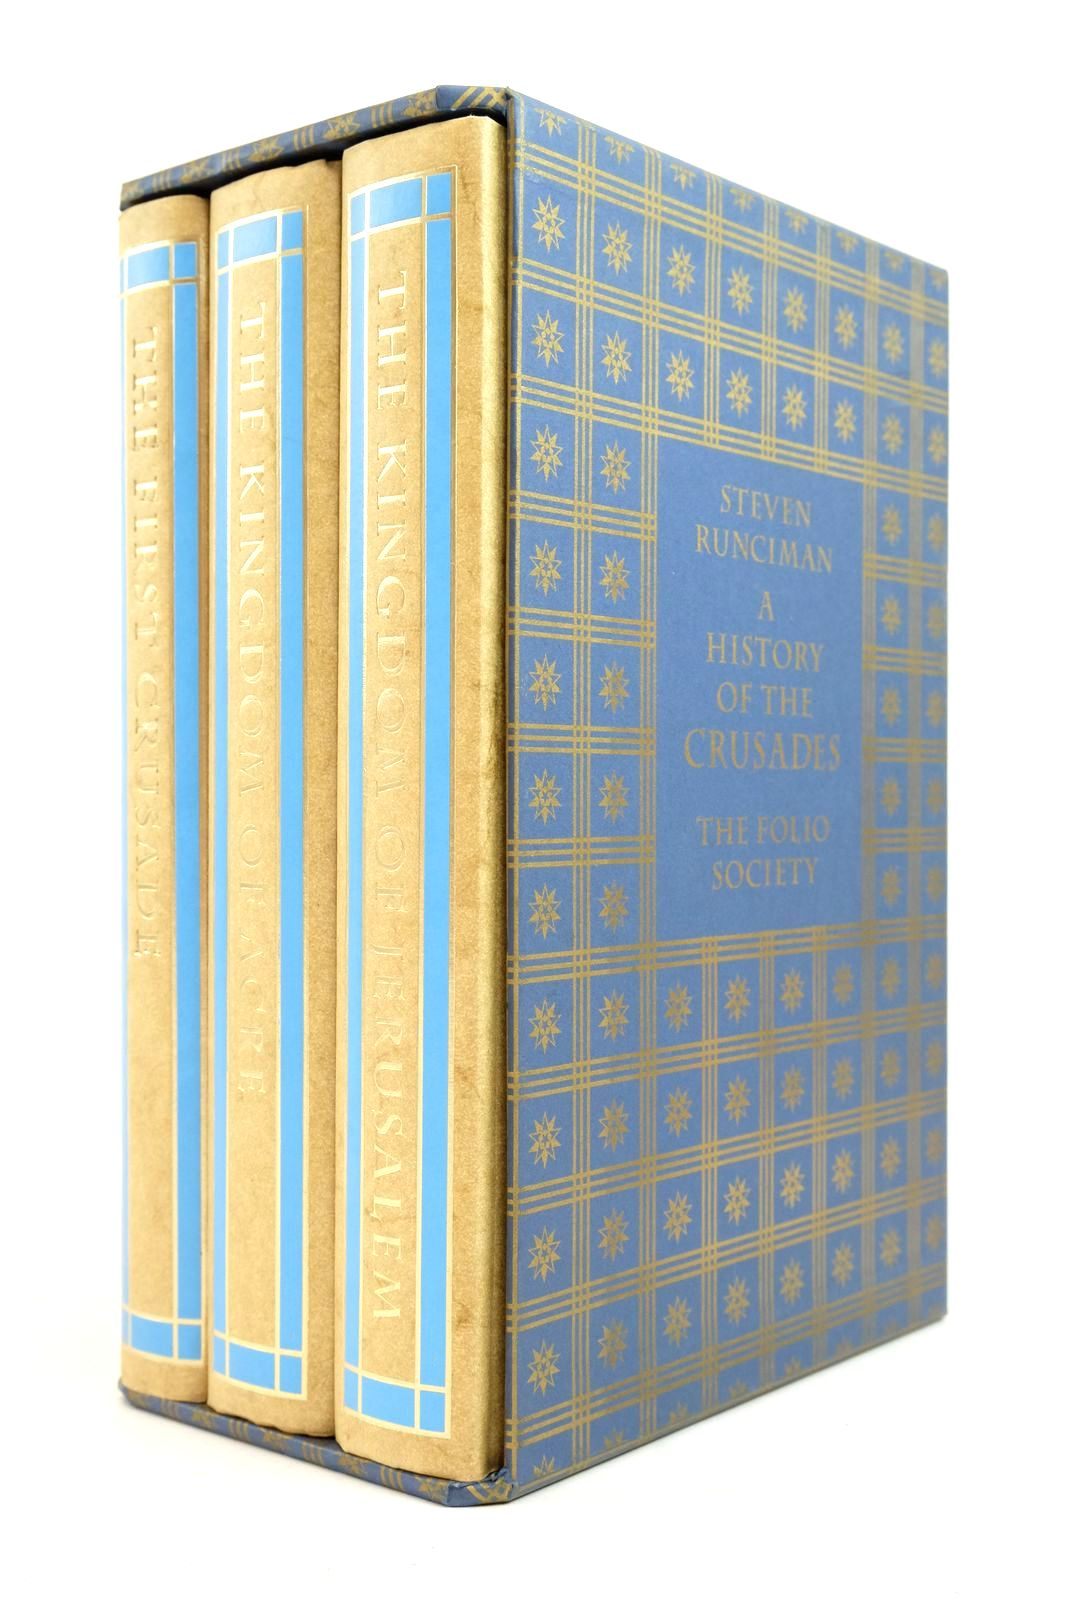 Photo of A HISTORY OF THE CRUSADES (3 VOLUMES)- Stock Number: 2134705